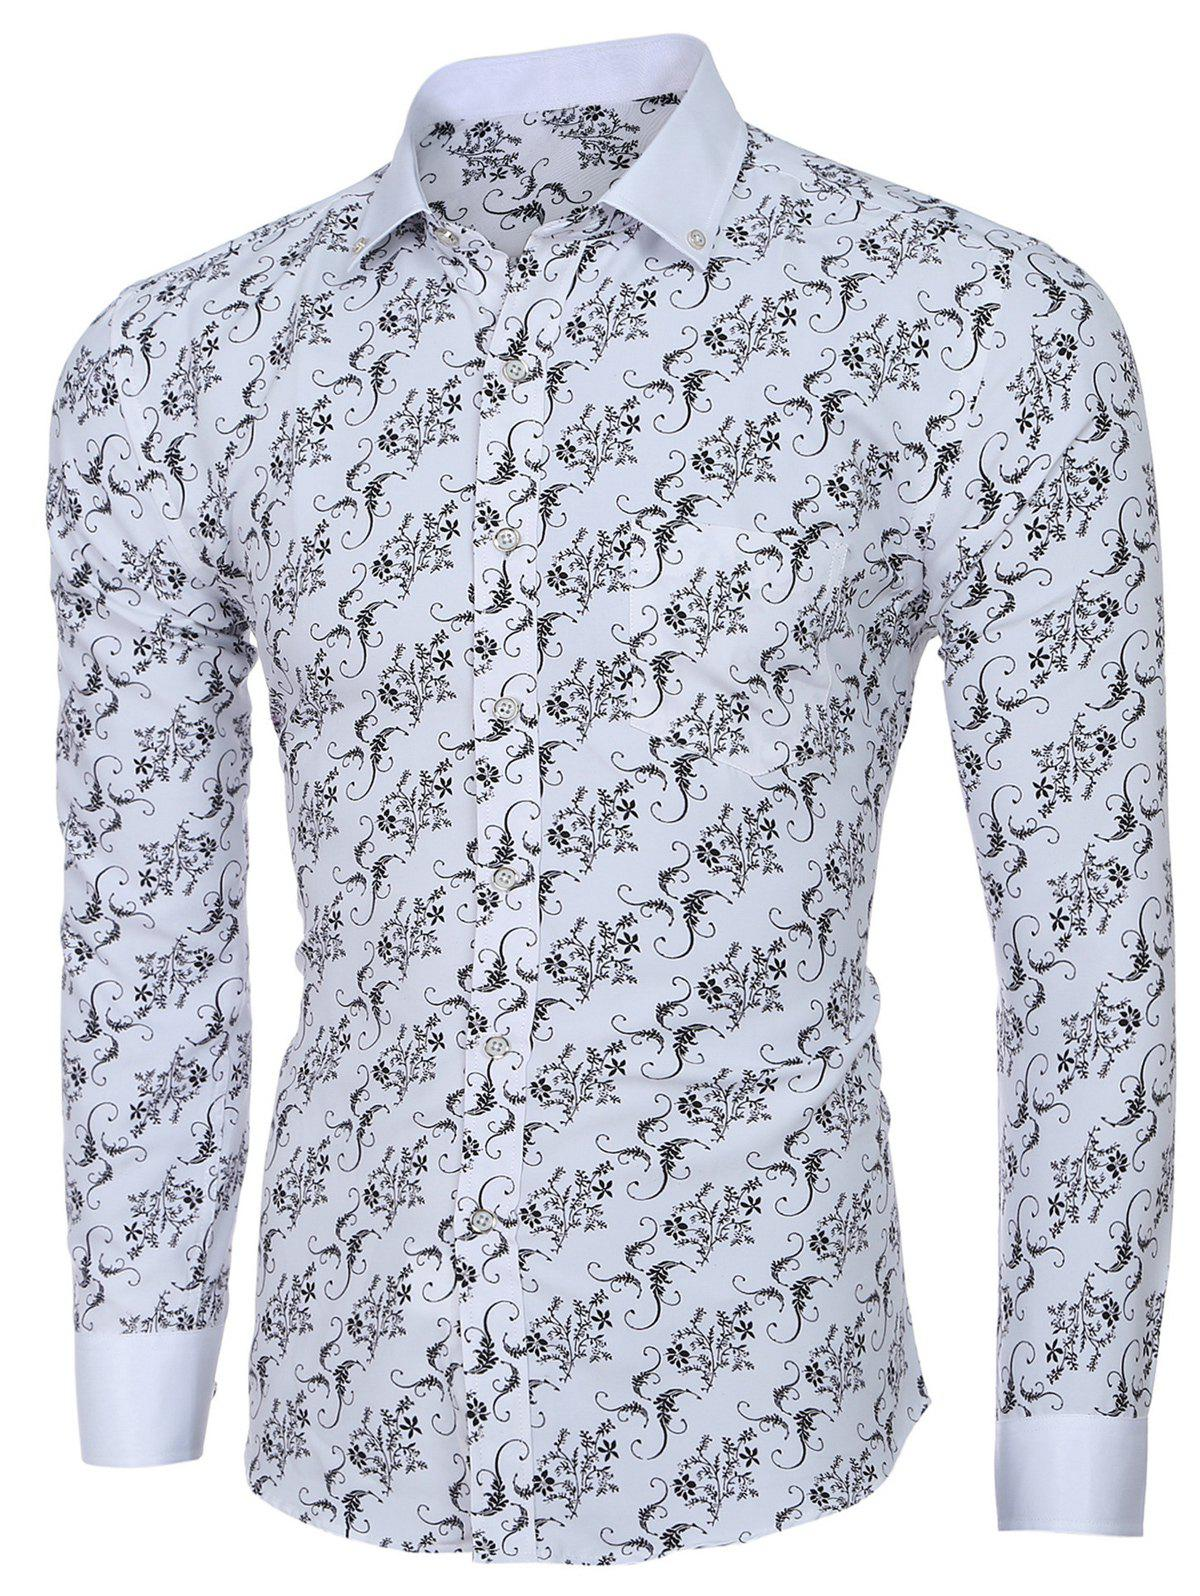 Men 's  Collar Turn-down fleur d'impression à manches longues T-shirt - Blanc 2XL